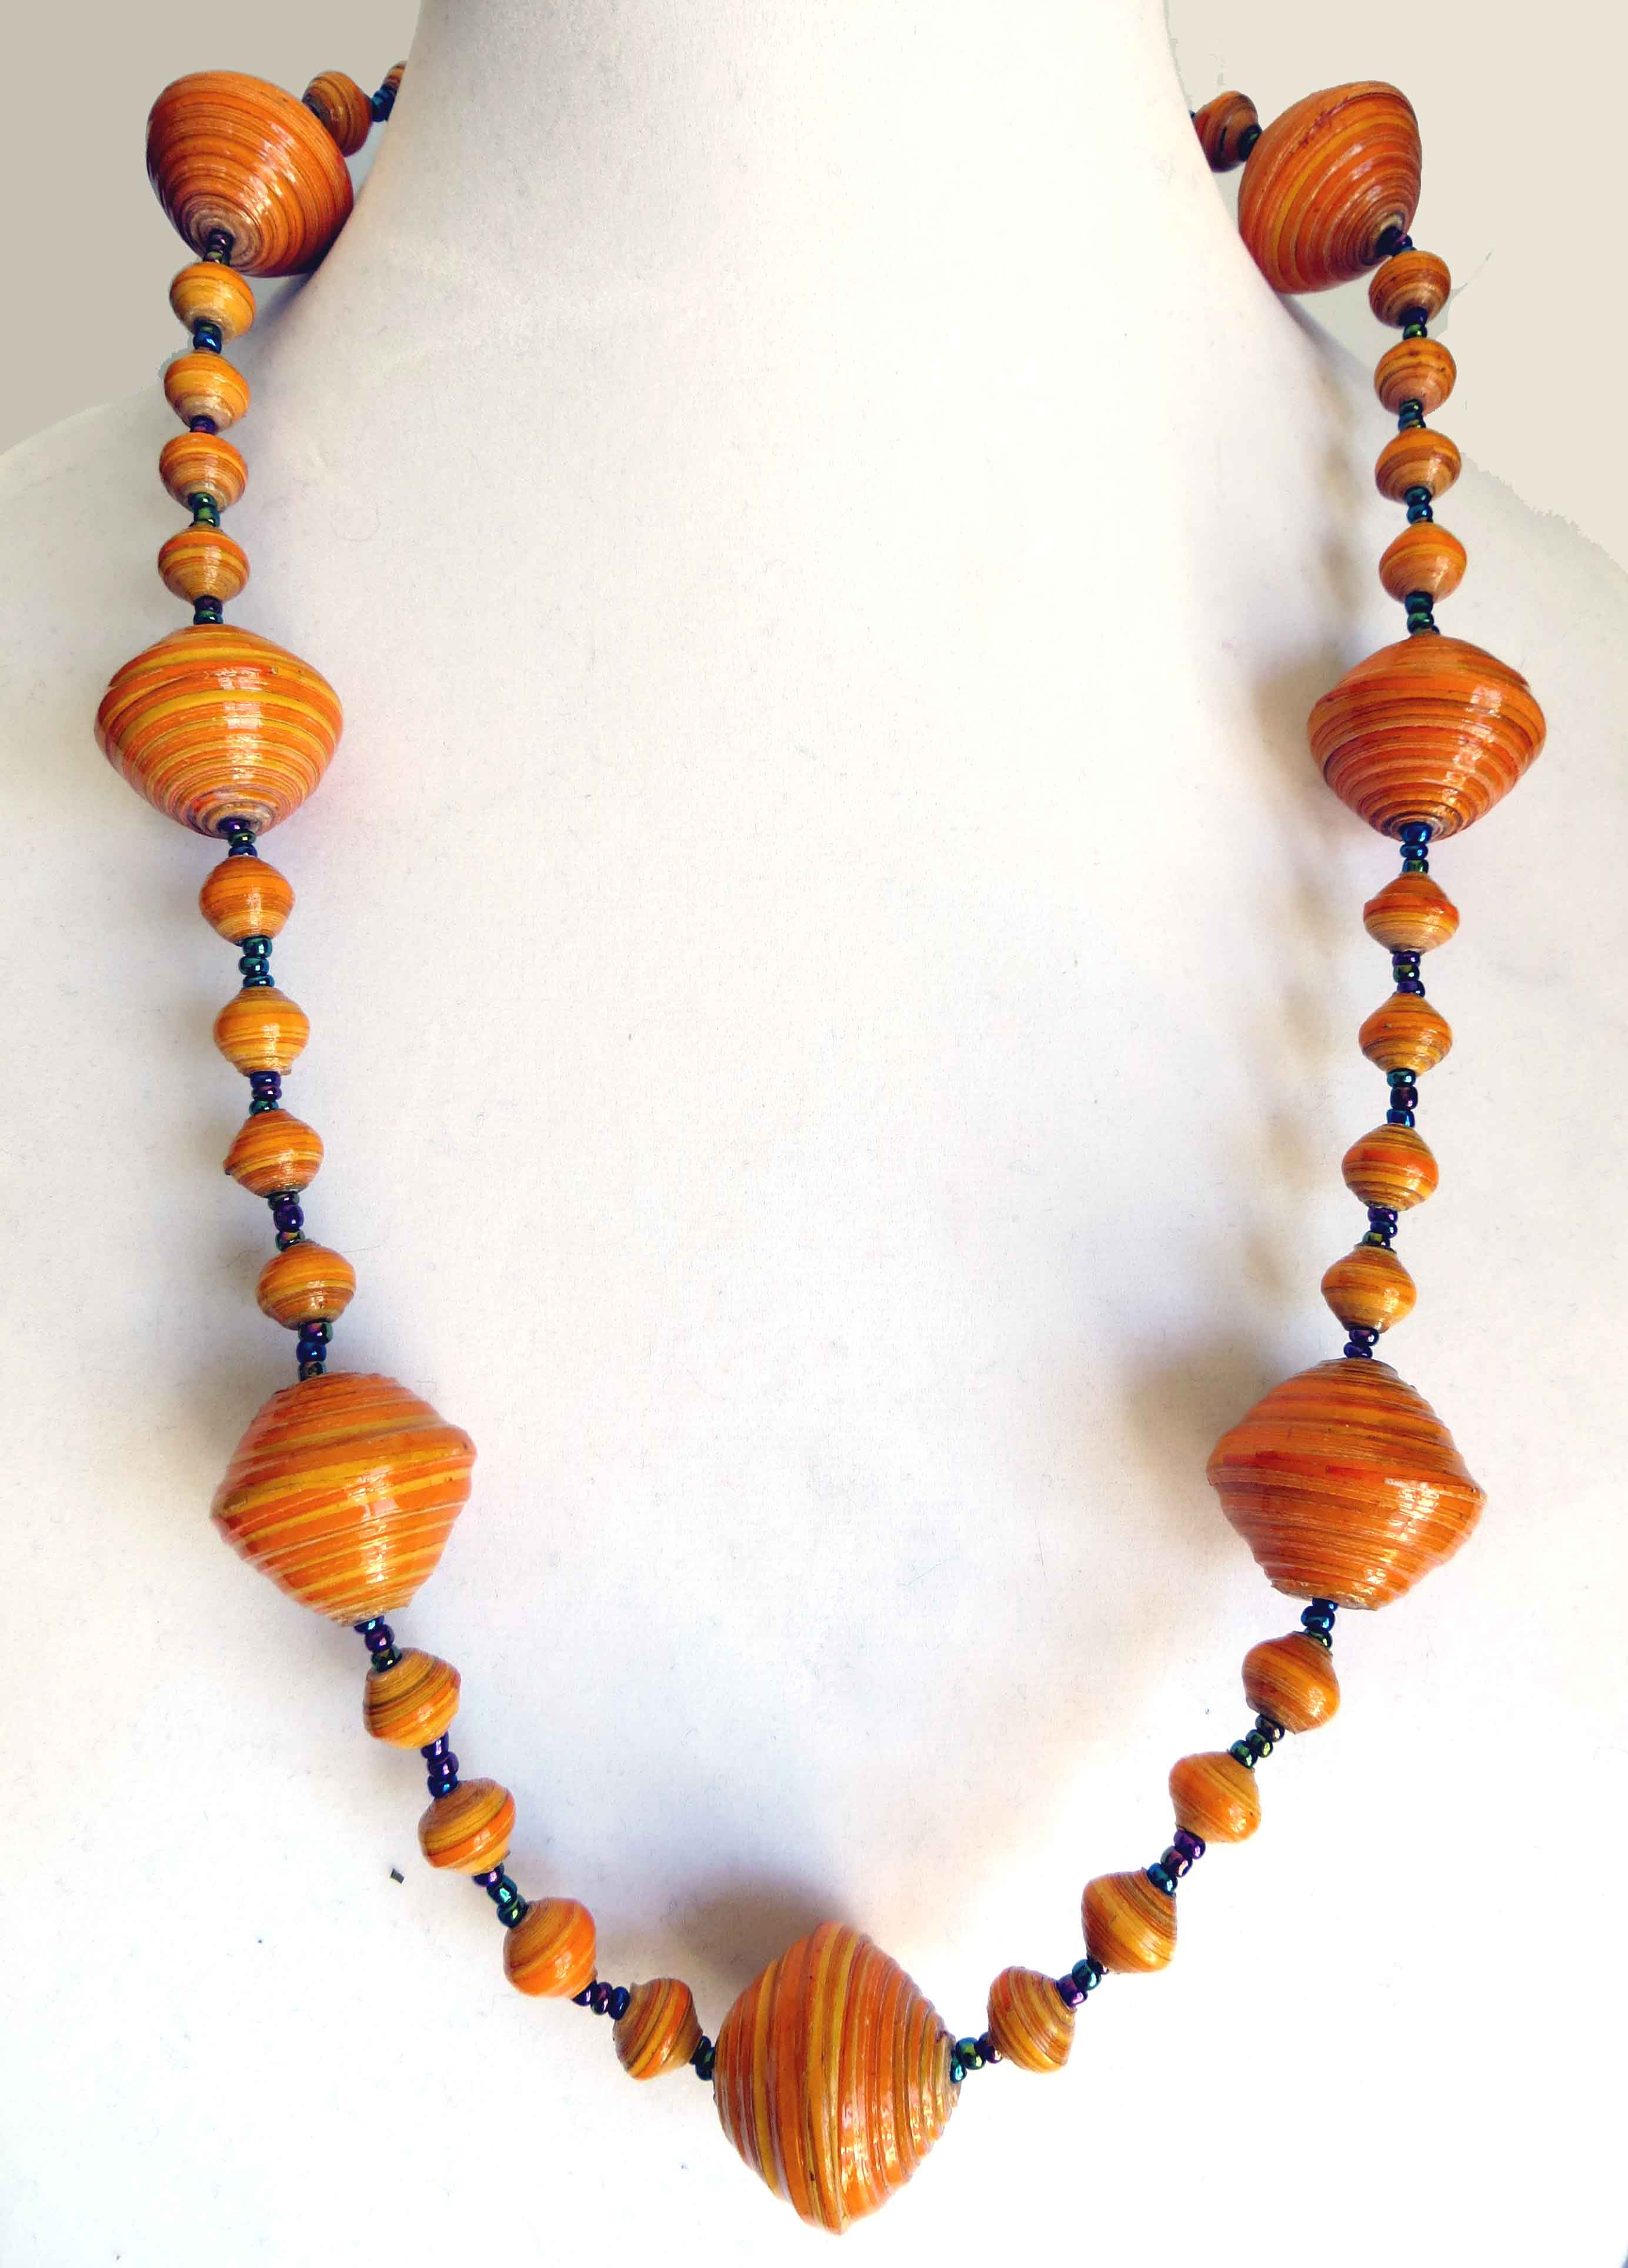 Orange gigantic bead necklace